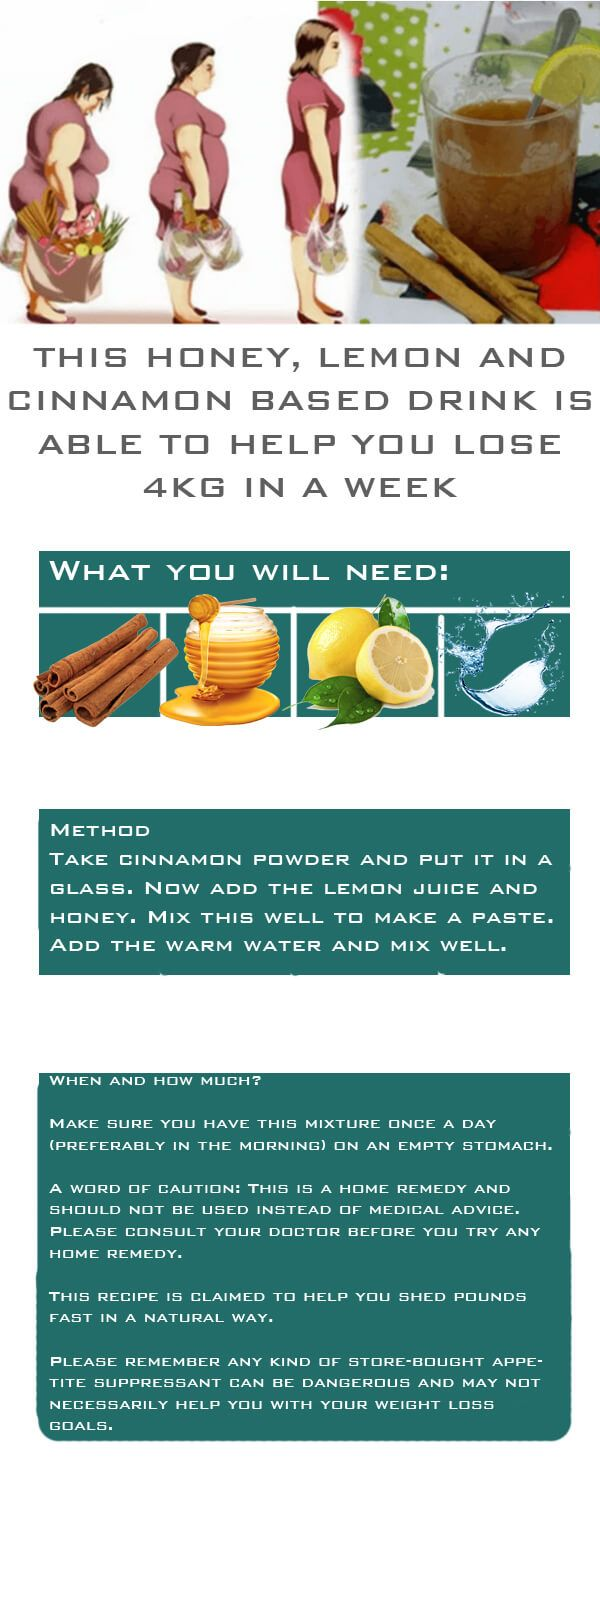 If you want to lose weight but haven't found any success, this remedy is for you — honey, lemon and cinnamon mix. How it works:Honey, lemon and warm water are known to help improve digestion, cleanse your body of toxins and aid in weight loss. This is largely due to the pectin present in lemonsContinue Reading